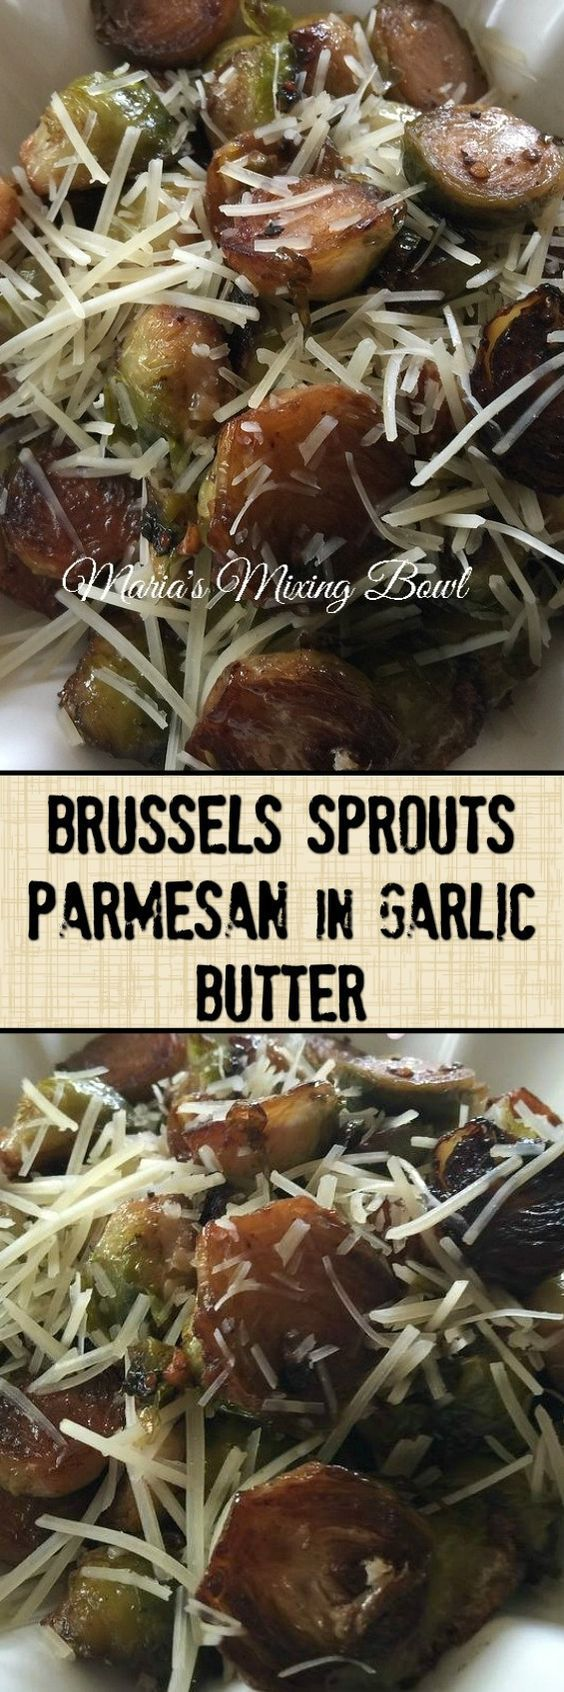 Brussels Sprouts Parmesan in Garlic Butter - Brussels Sprouts with much flavor! The garlic butter sauce and Parmesan cheese makes it even more special.